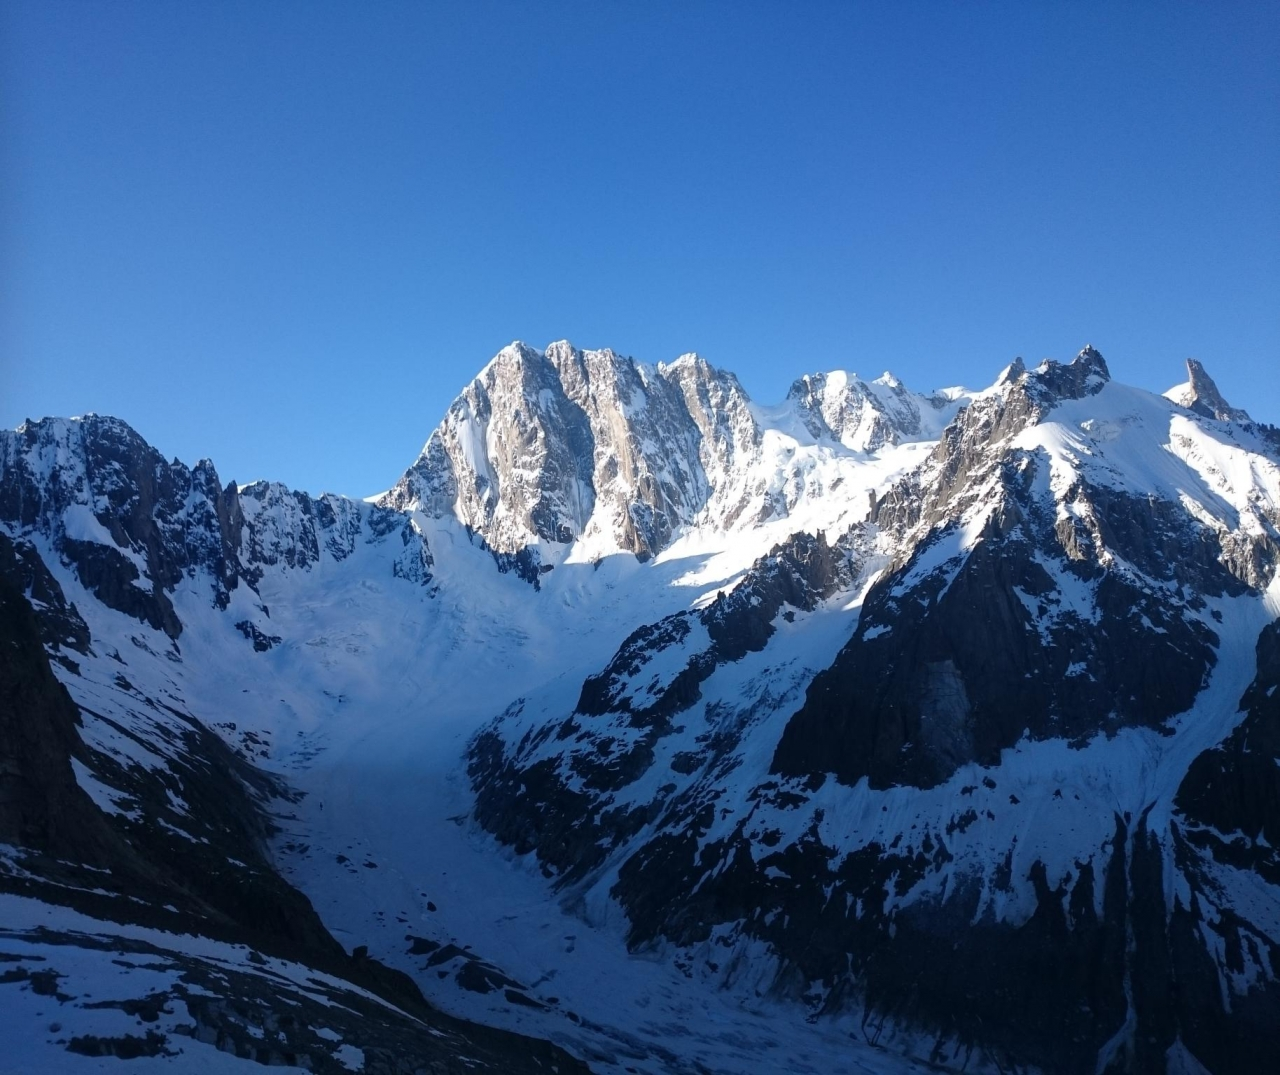 A picture from Chamonix - Mont Blanc by Dimitris N.